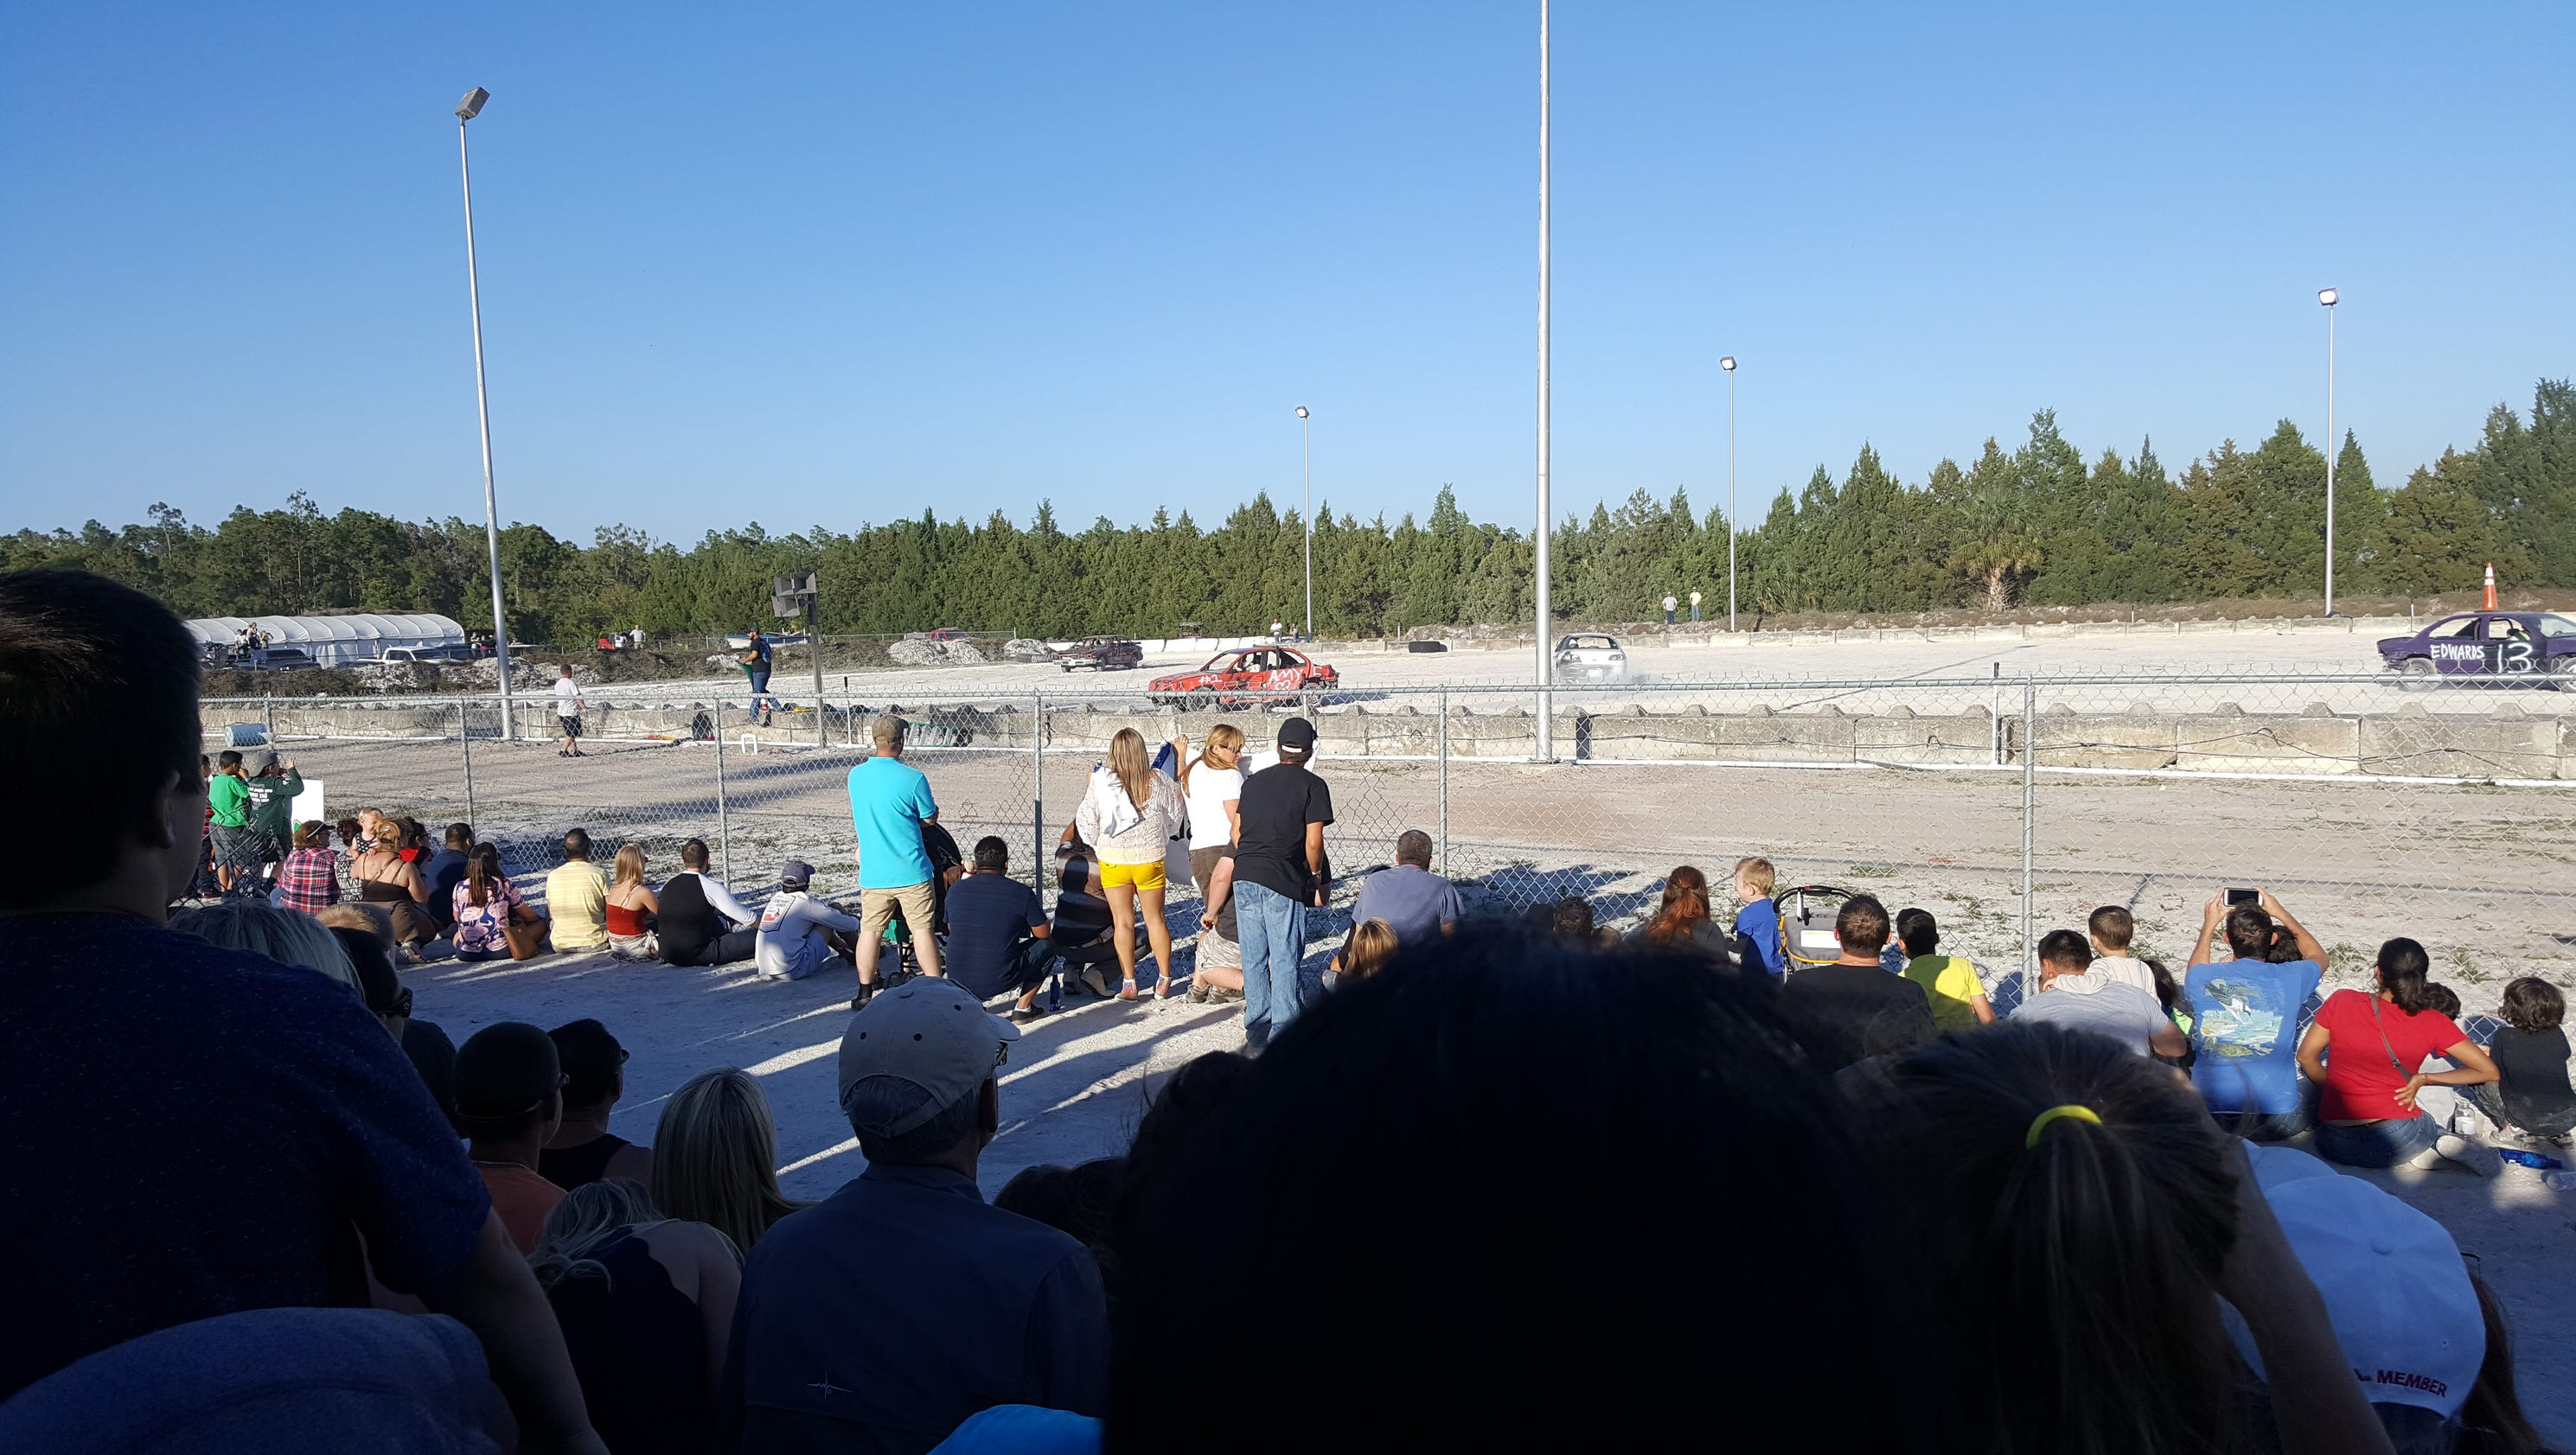 2016 demolition derby Raleigh NC fairgrounds on the wall ... |Demolition Derby Fair Grounds